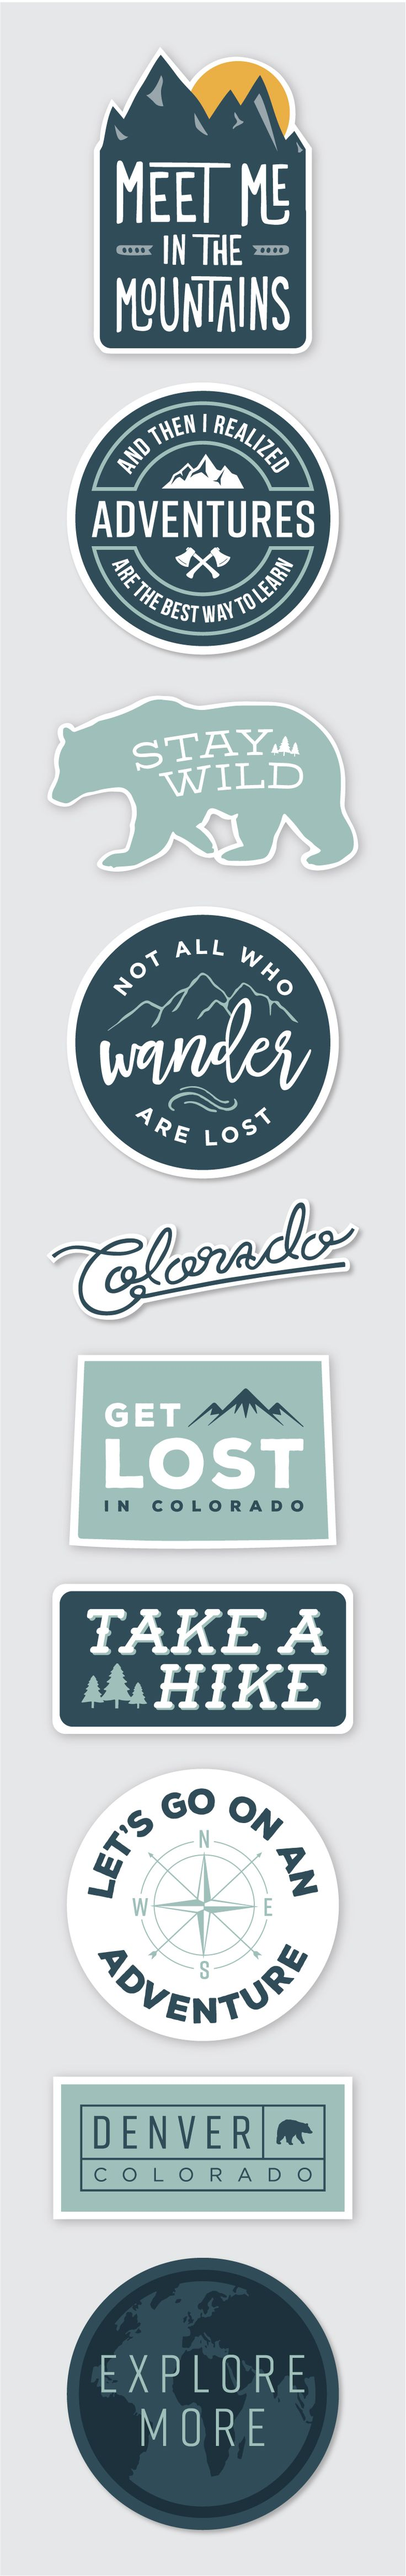 Car sticker design pinterest - Adventure Sticker Collection And Then I Realized Adventures Are The Best Way